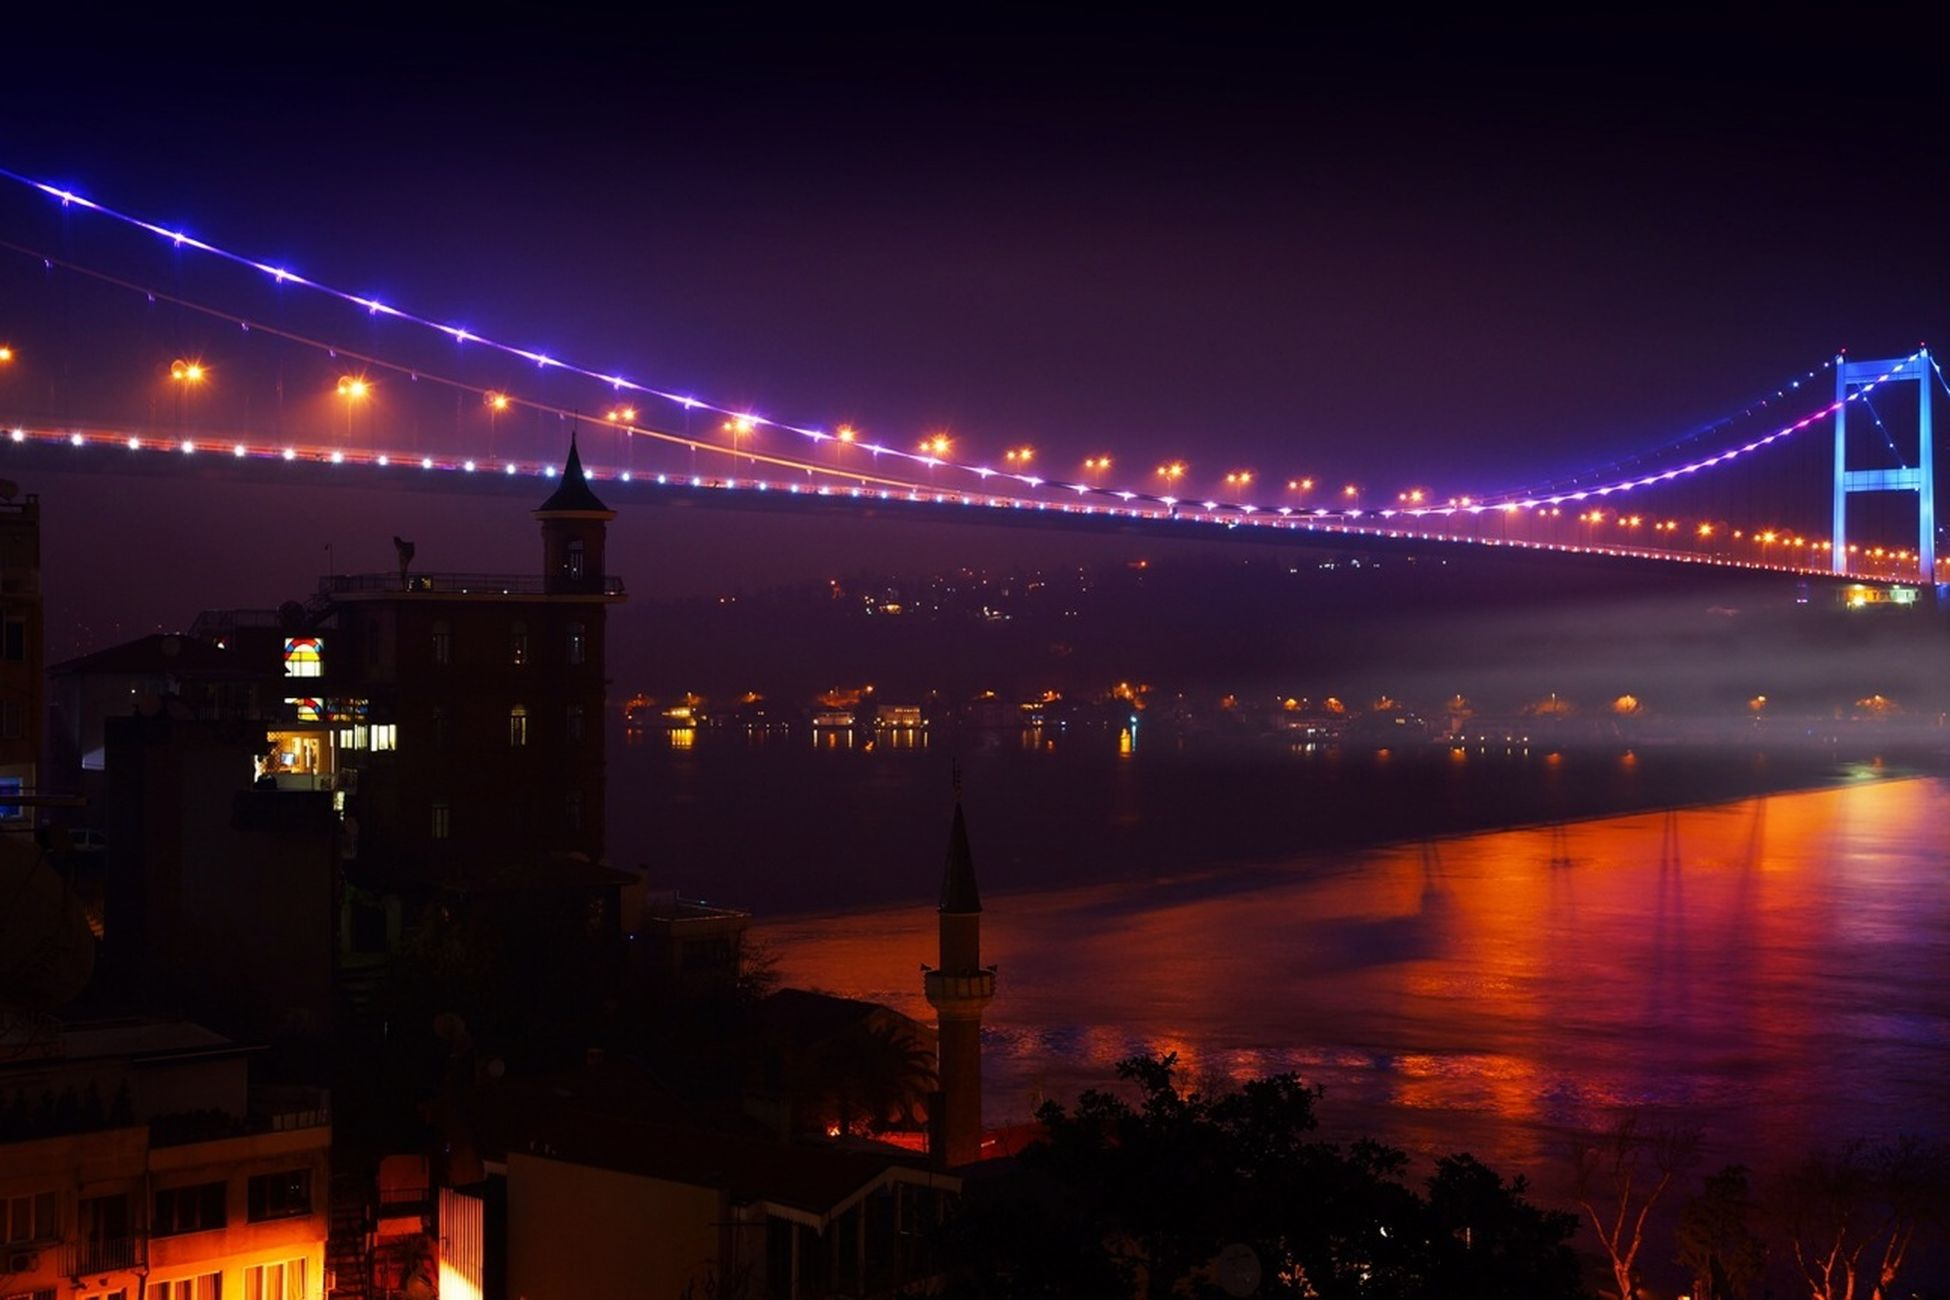 illuminated, architecture, night, built structure, connection, bridge - man made structure, water, bridge, river, engineering, building exterior, city, suspension bridge, sky, reflection, waterfront, dusk, travel destinations, transportation, copy space